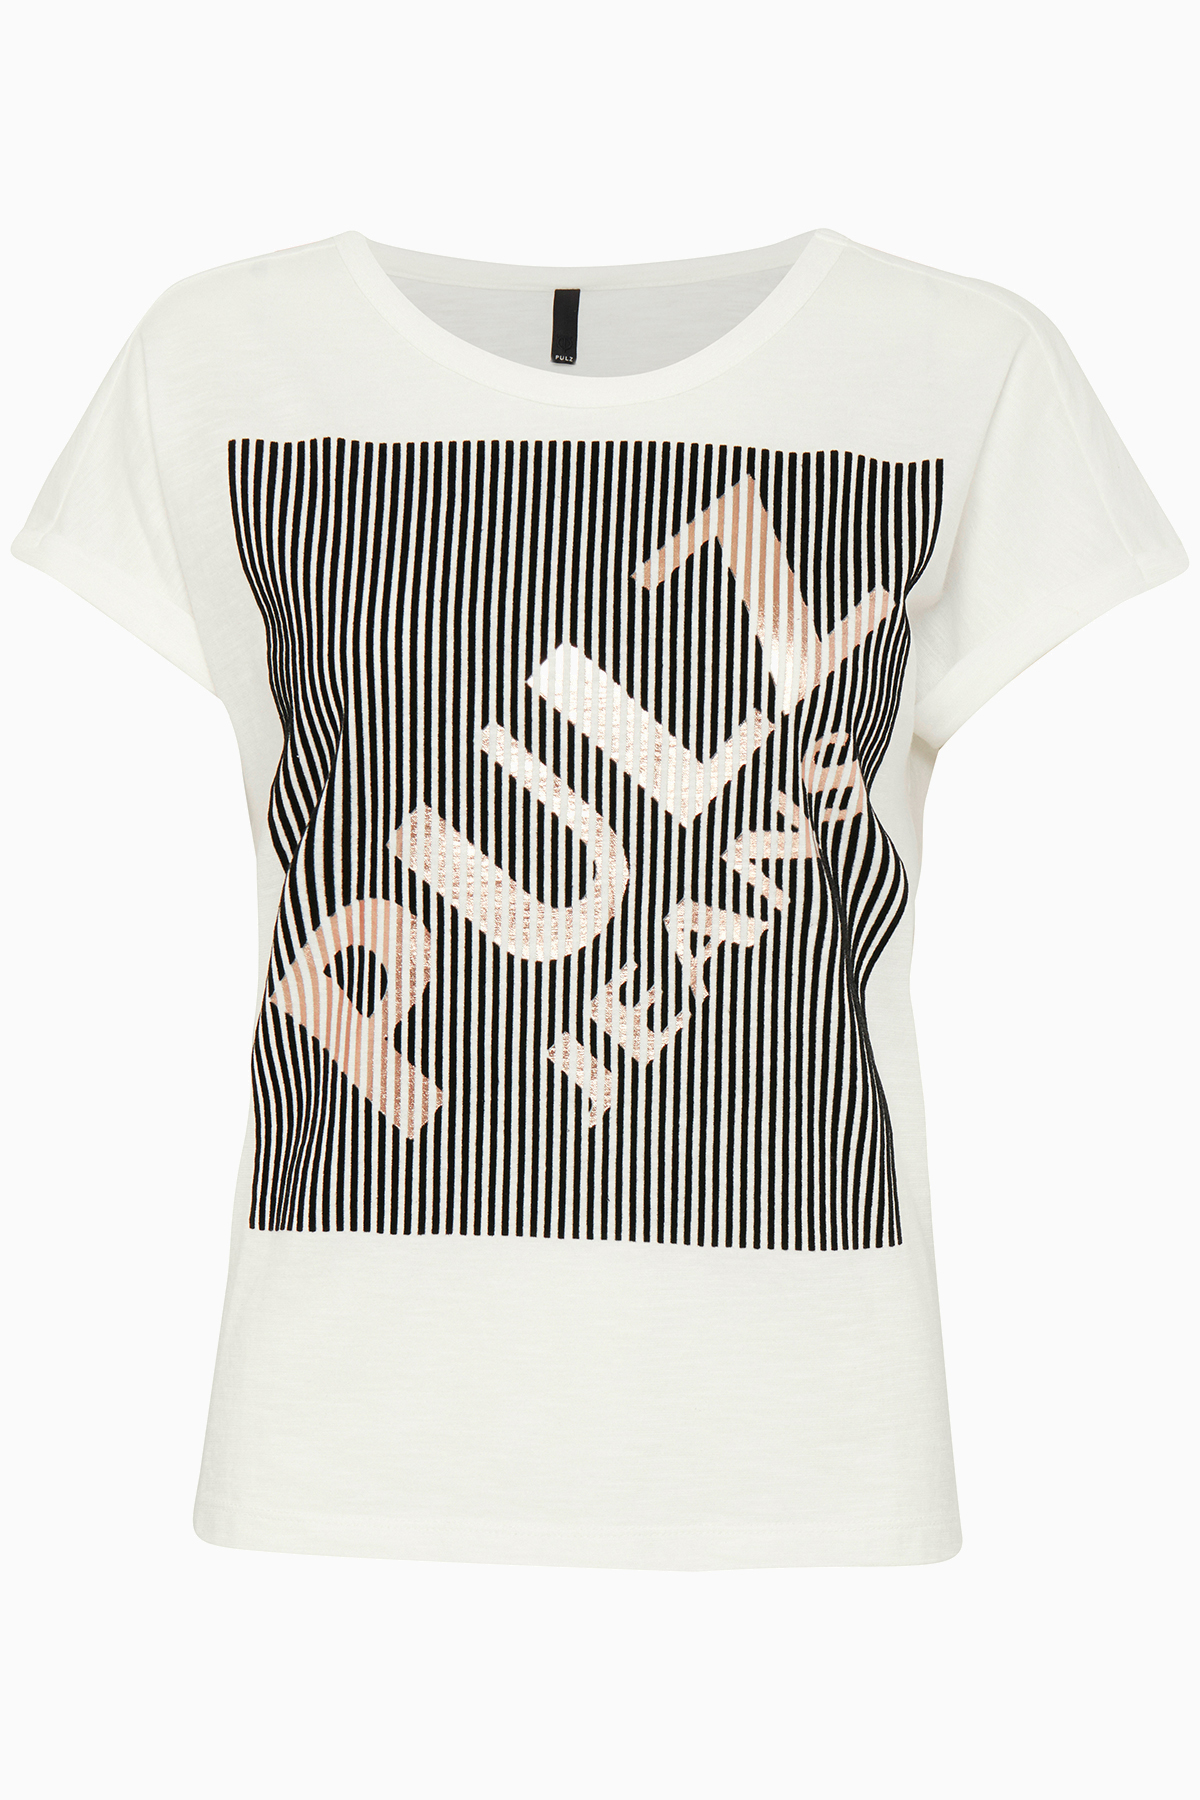 Pulz Jeans Dame God Eclipse T-shirt  - Off-white